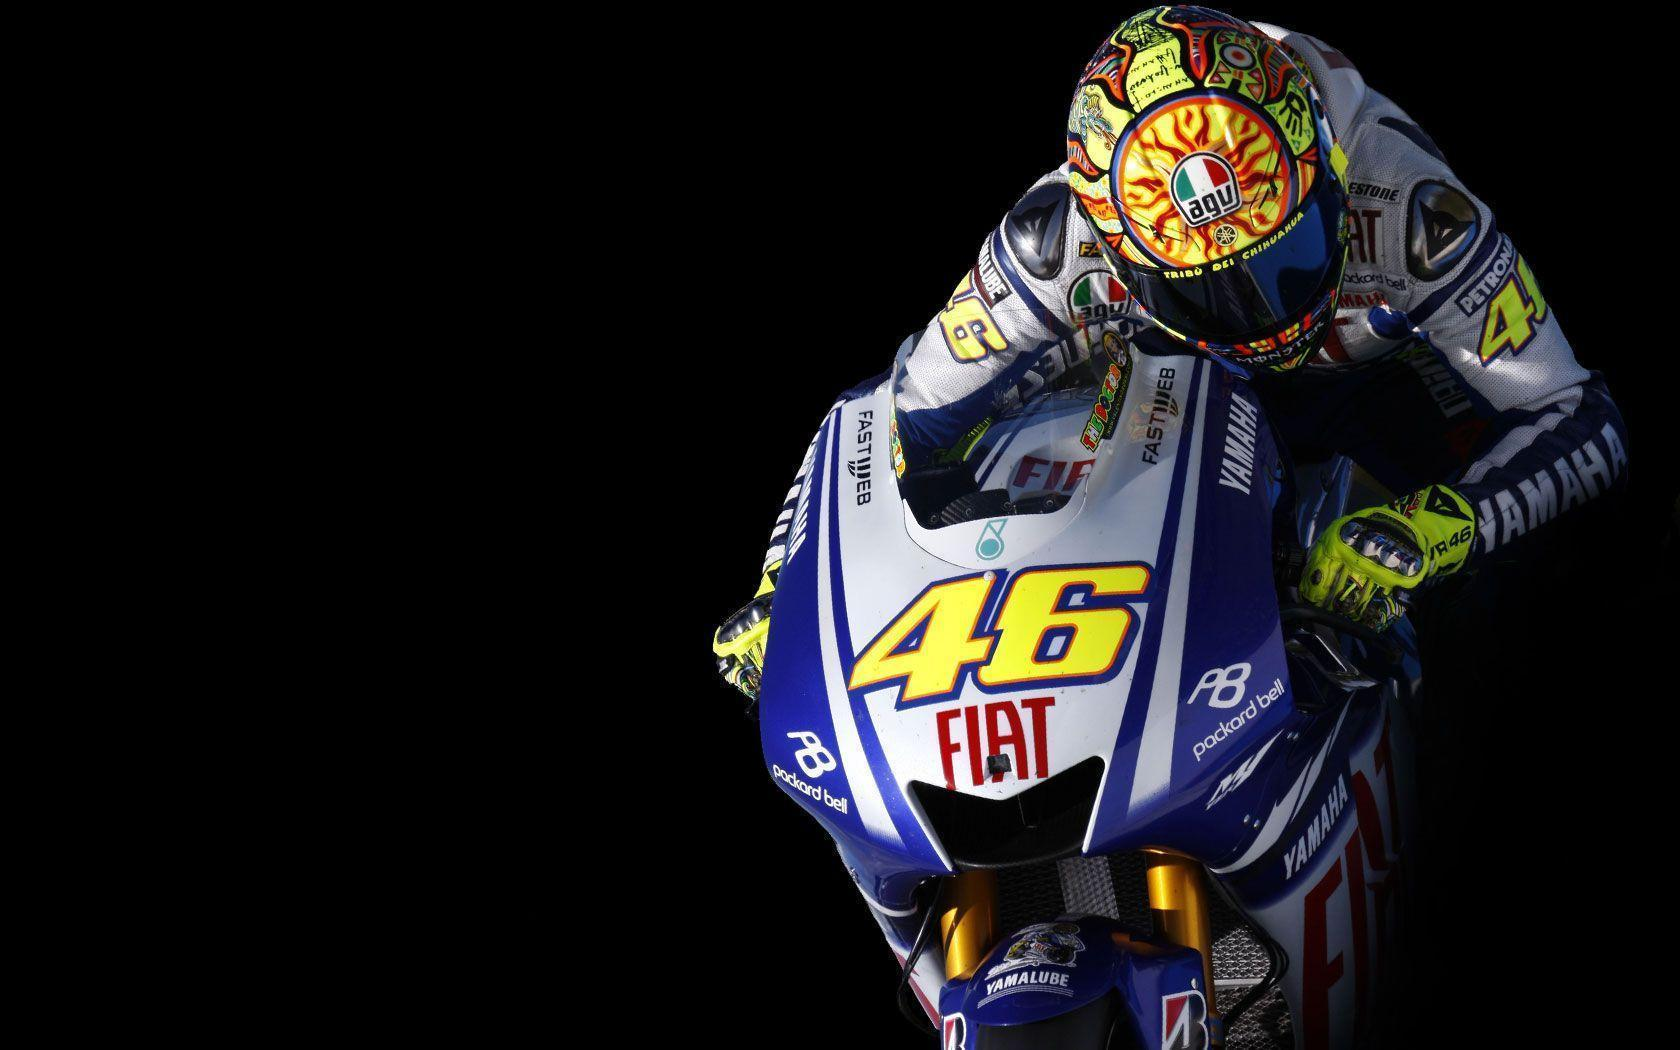 Valentino Rossi HD Wallpapers - BackgroundHDWallpapers